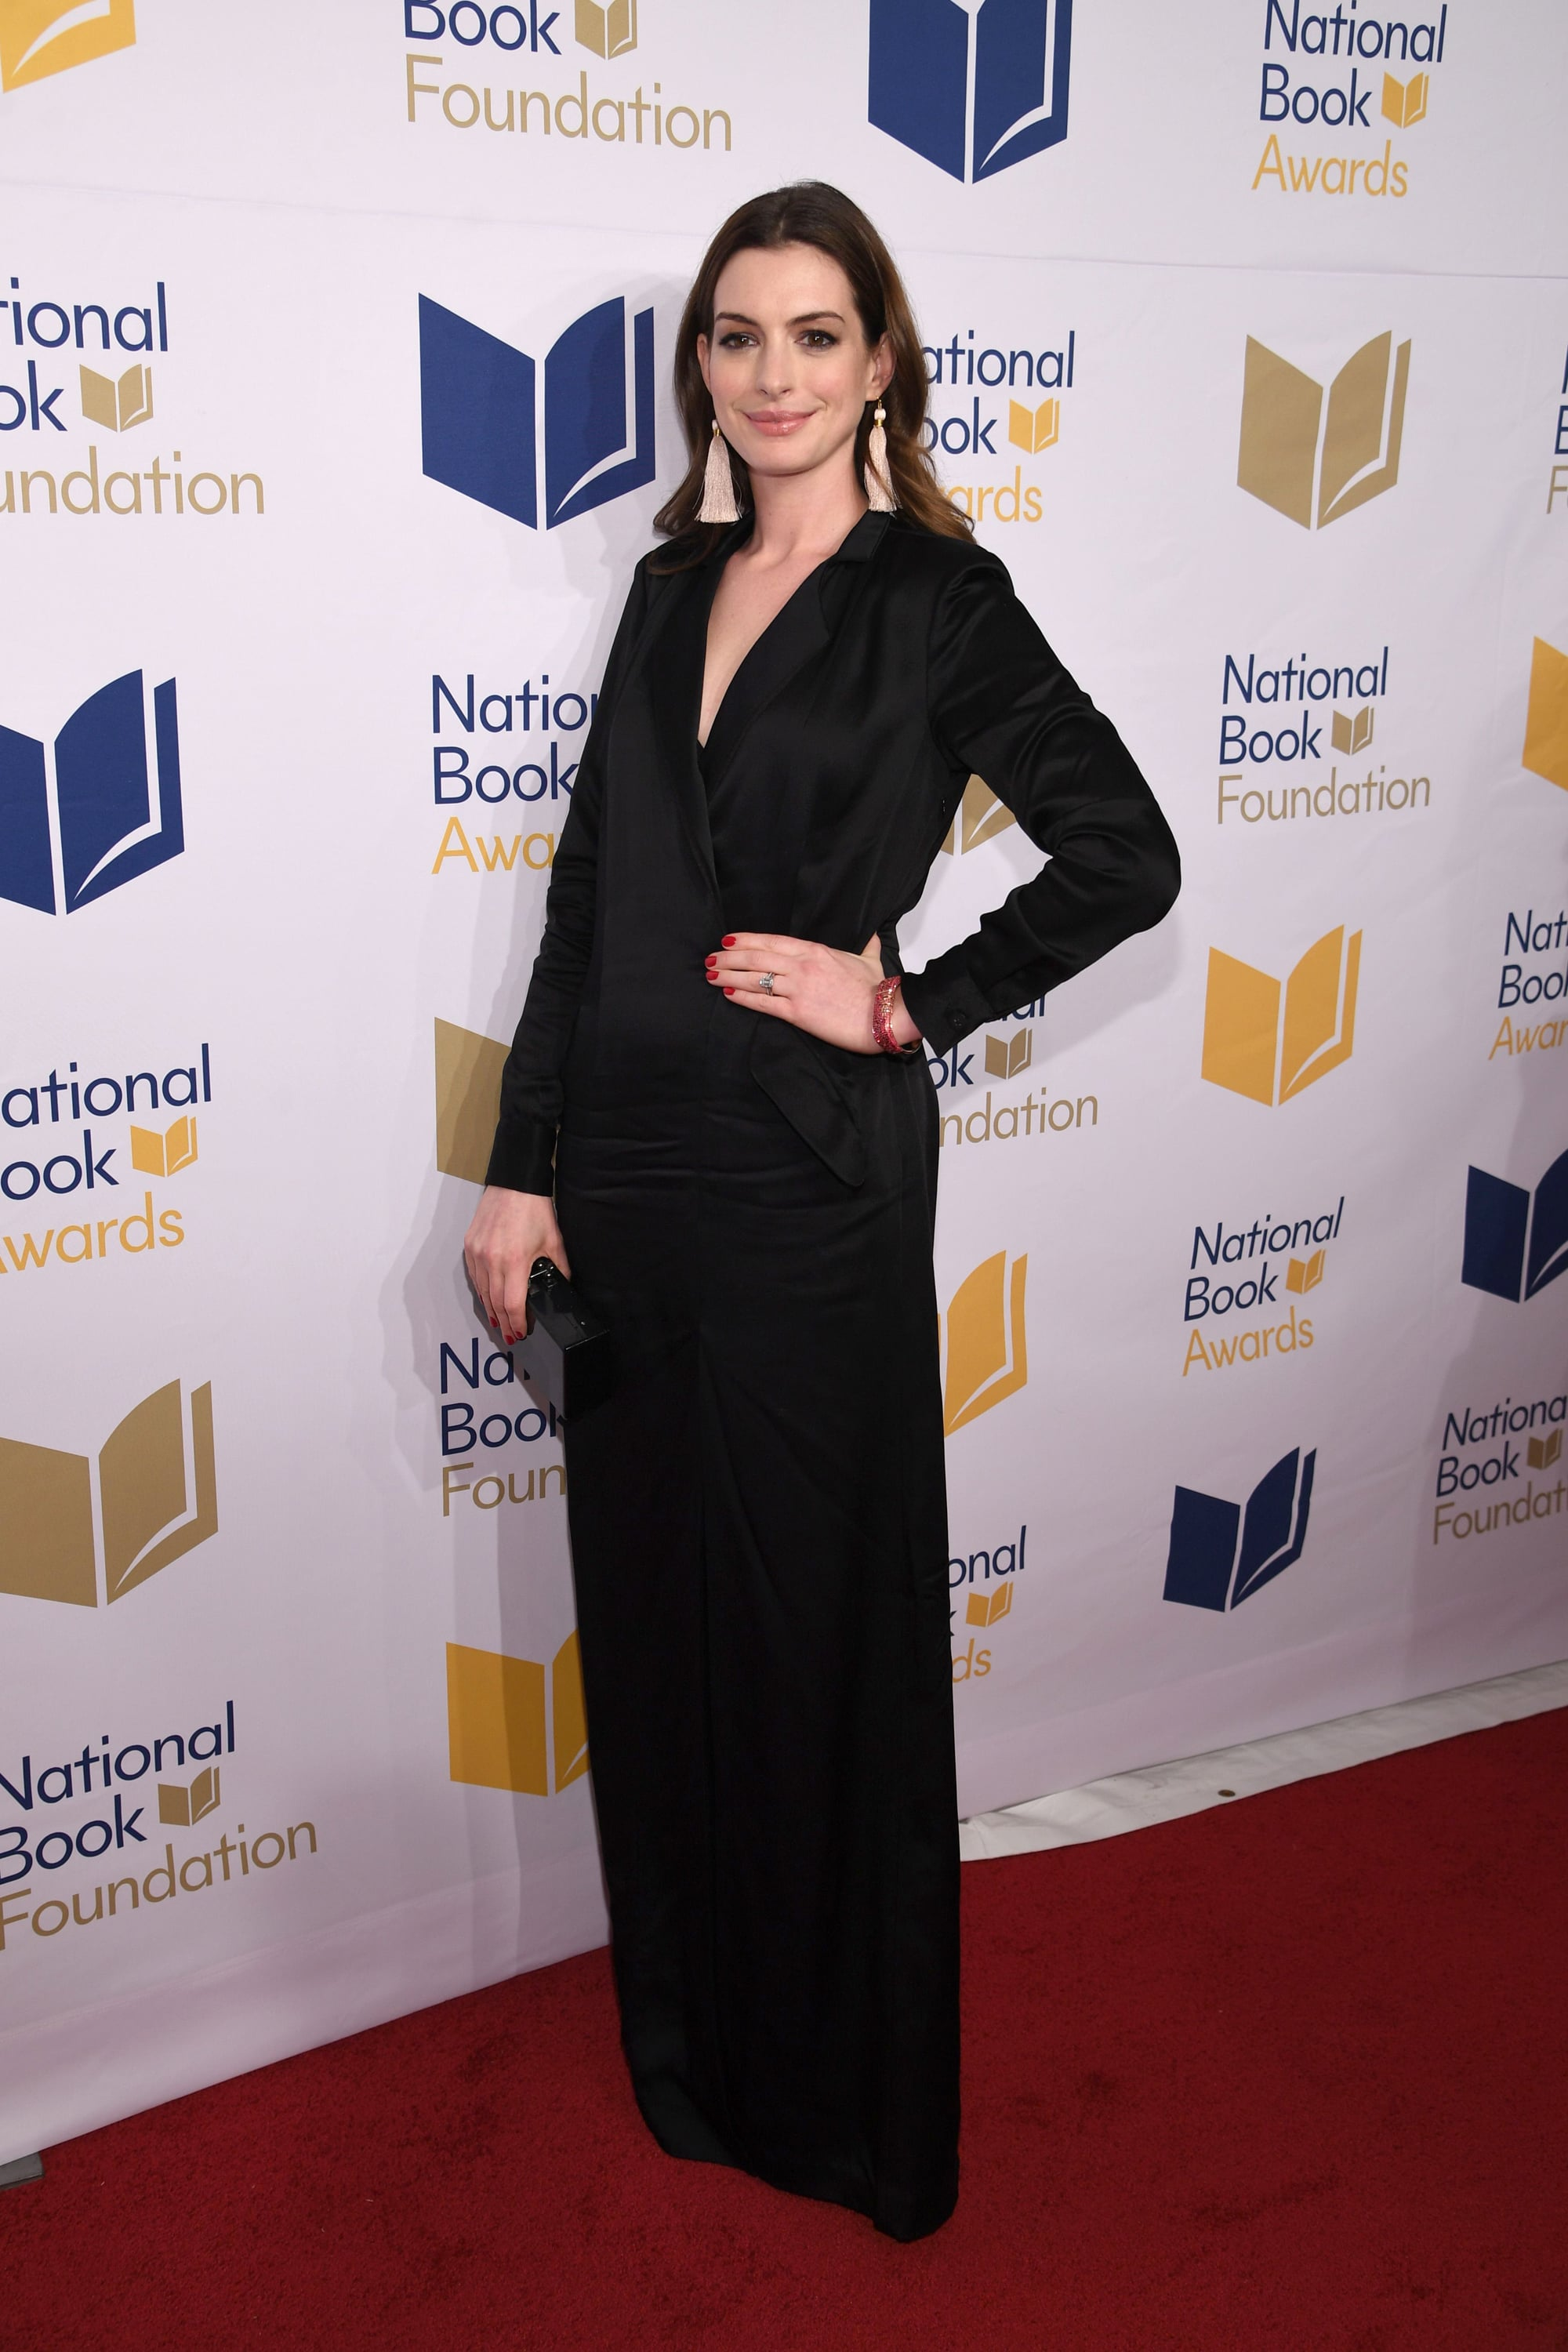 NEW YORK, NEW YORK - NOVEMBER 15: Anne Hathaway attends the 68th National Book Awards at Cipriani Wall Street on November 15, 2017 in New York City. (Photo by Dimitrios Kambouris/Getty Images)